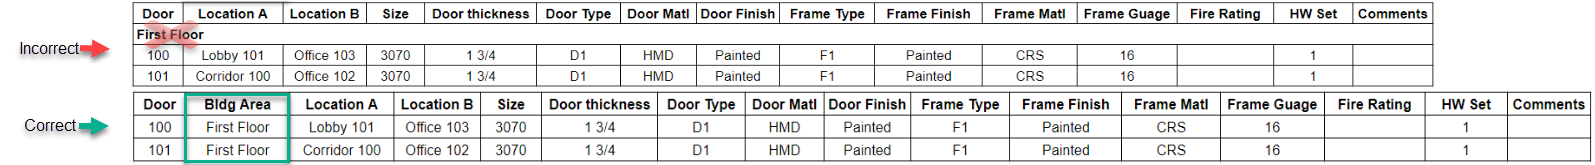 Examples of correct and incorrect Excel cell format; incorrect format shows a merged cell with text First Floor, correct format shows a column for the floor of the building.